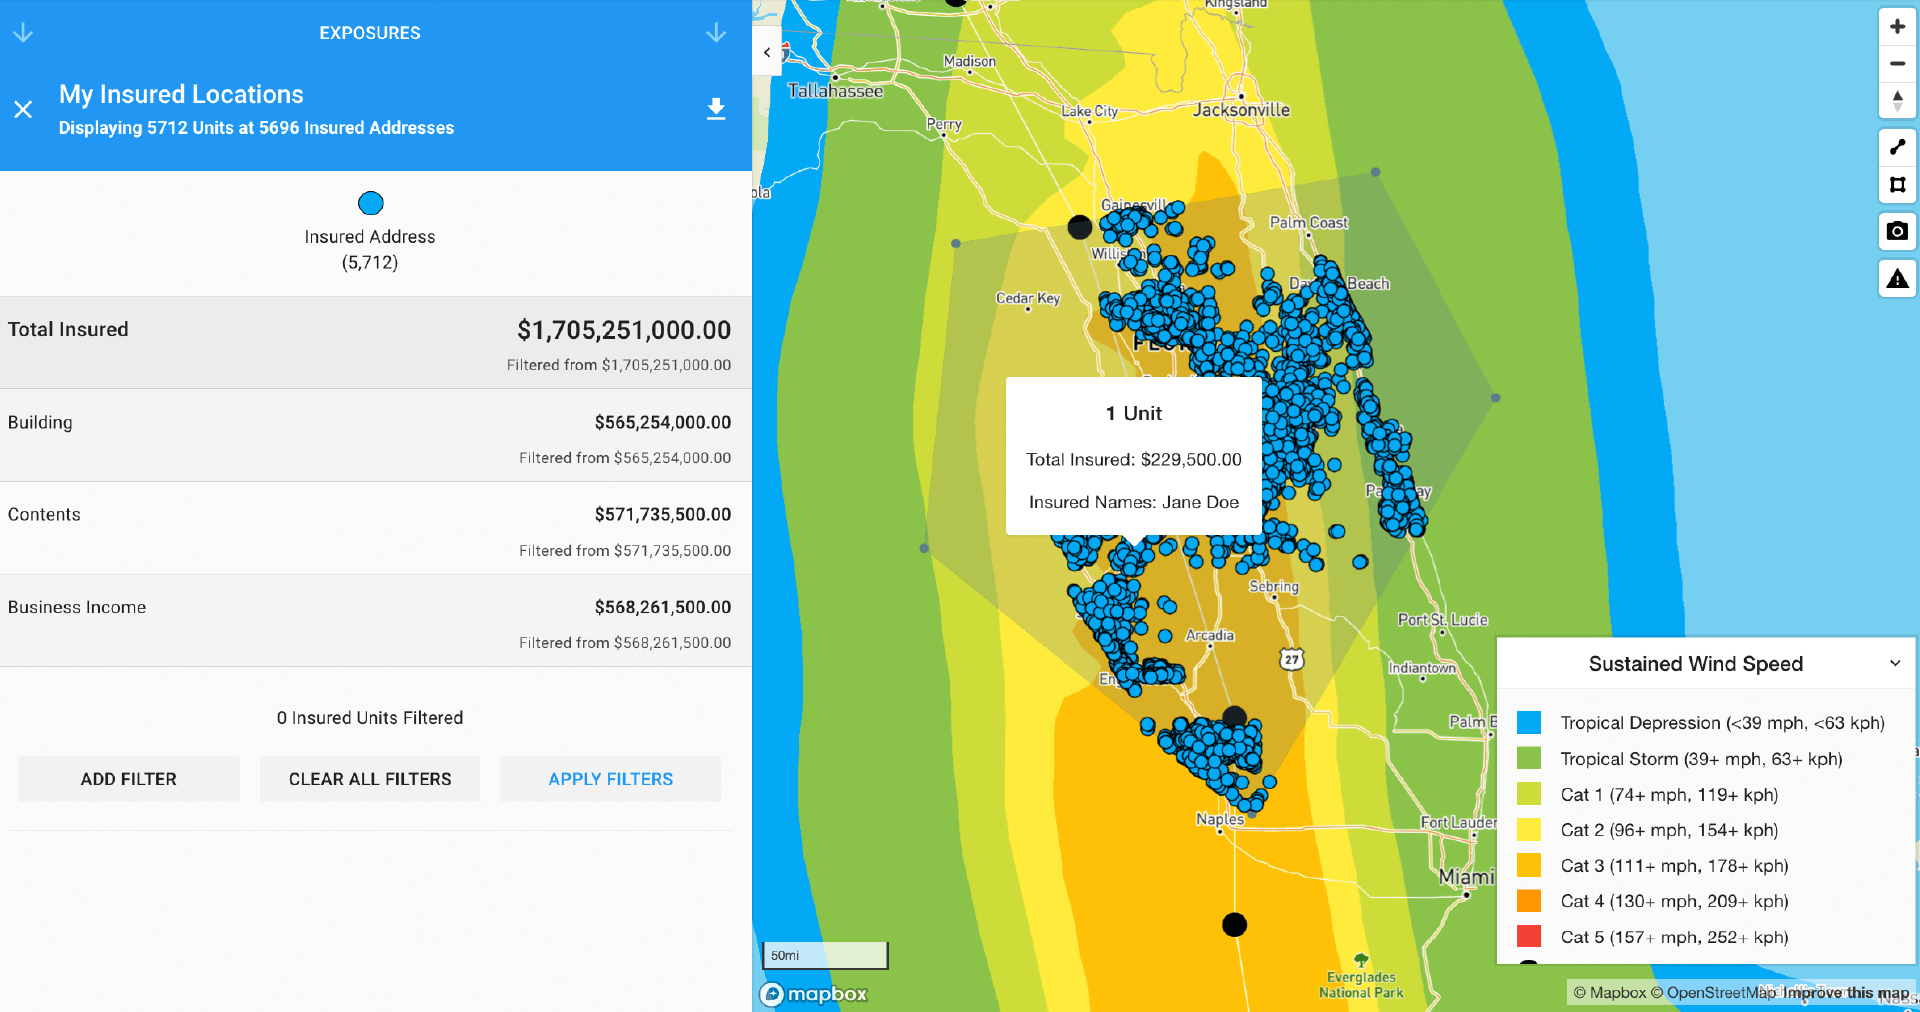 Map property exposures for hurricane risk insurance